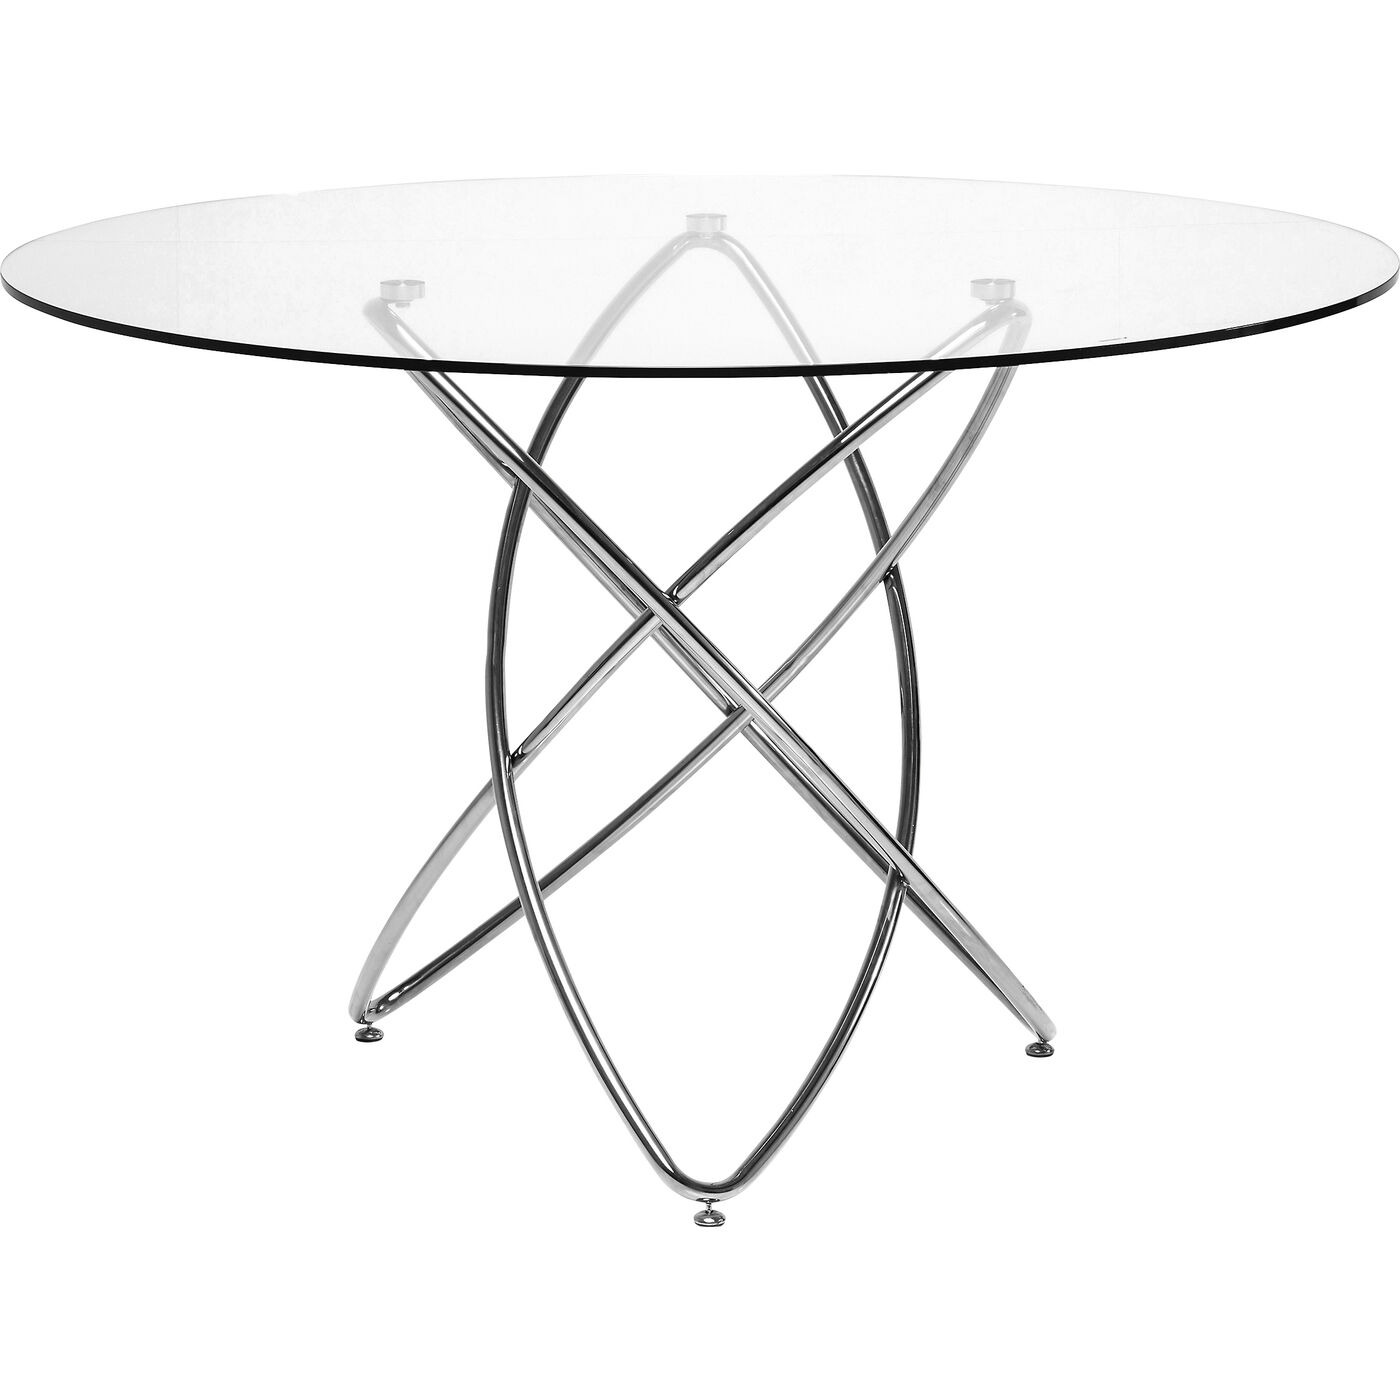 Table Molekular Ø120cm